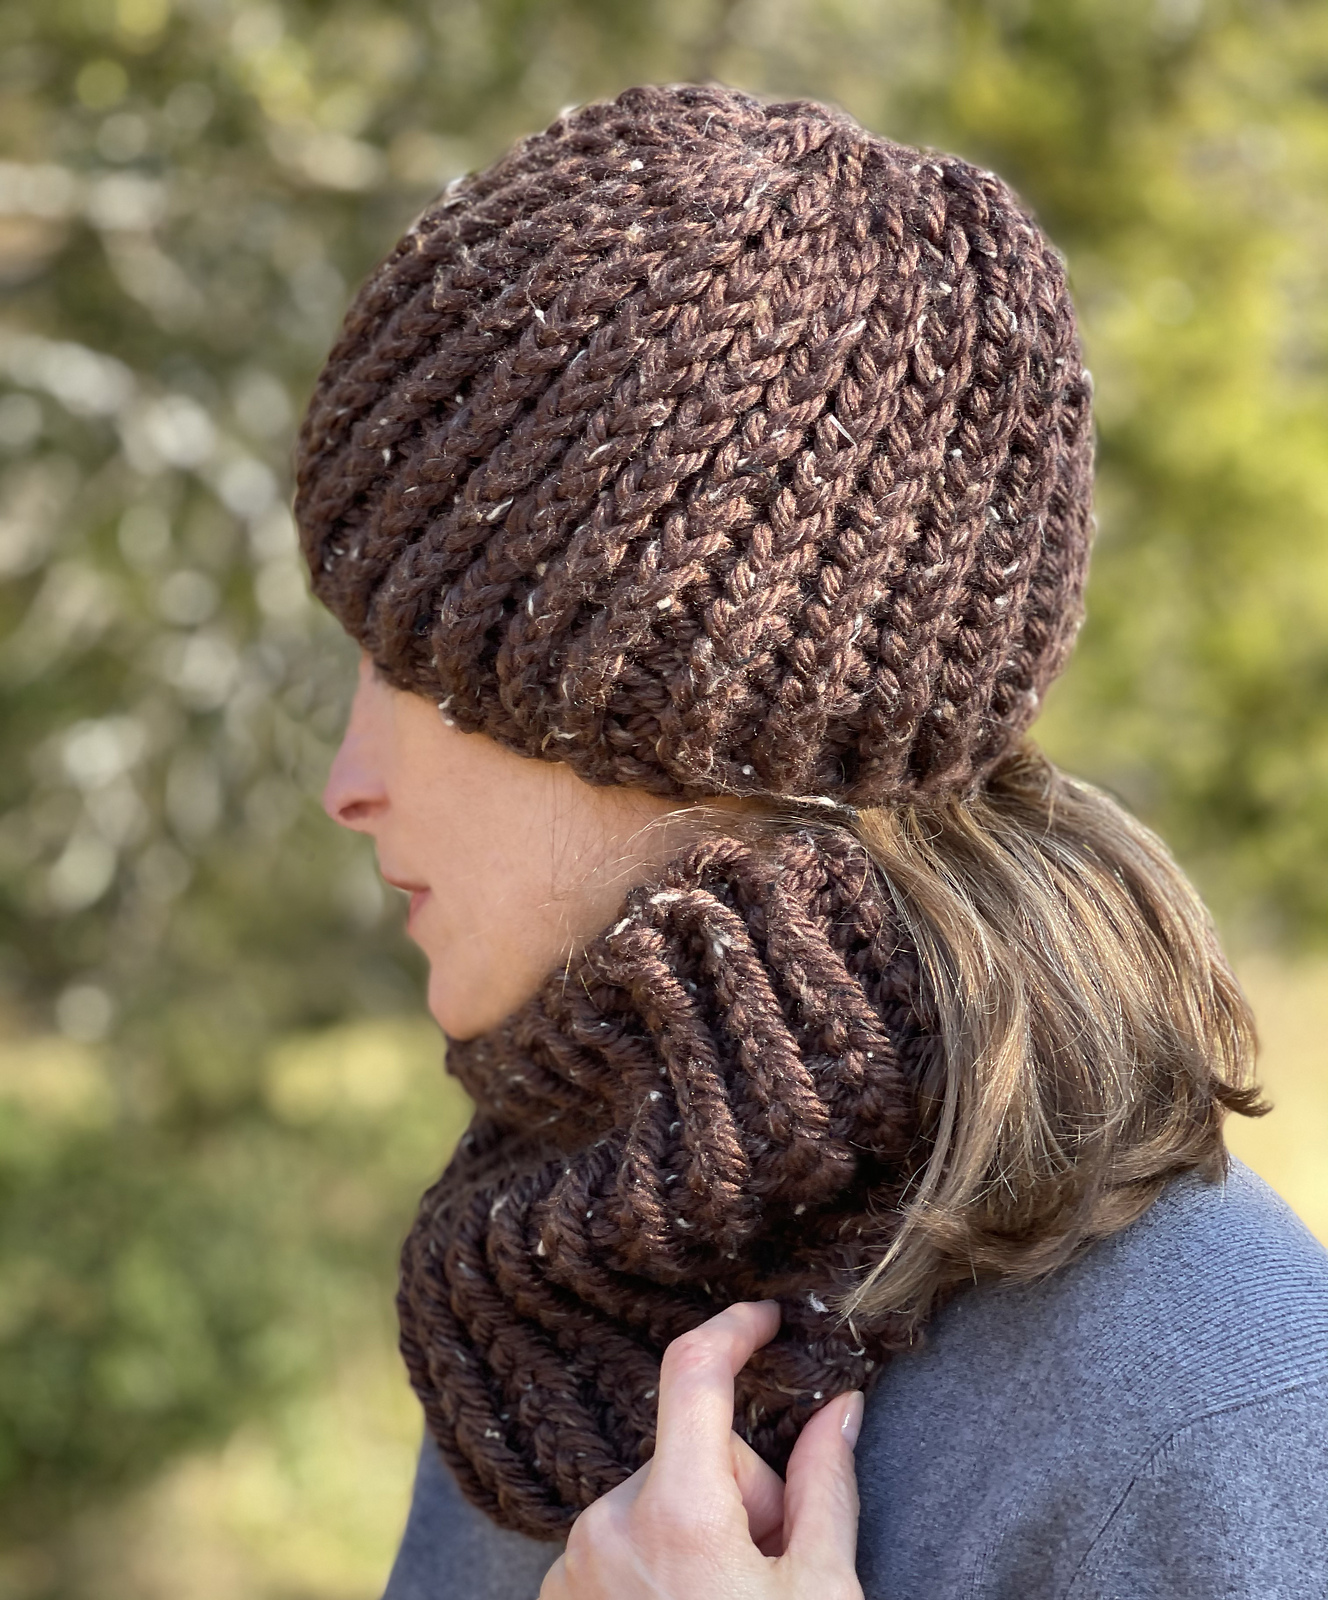 easy-and-cute-loom-knitting-image-pattern-ideas-for-2019